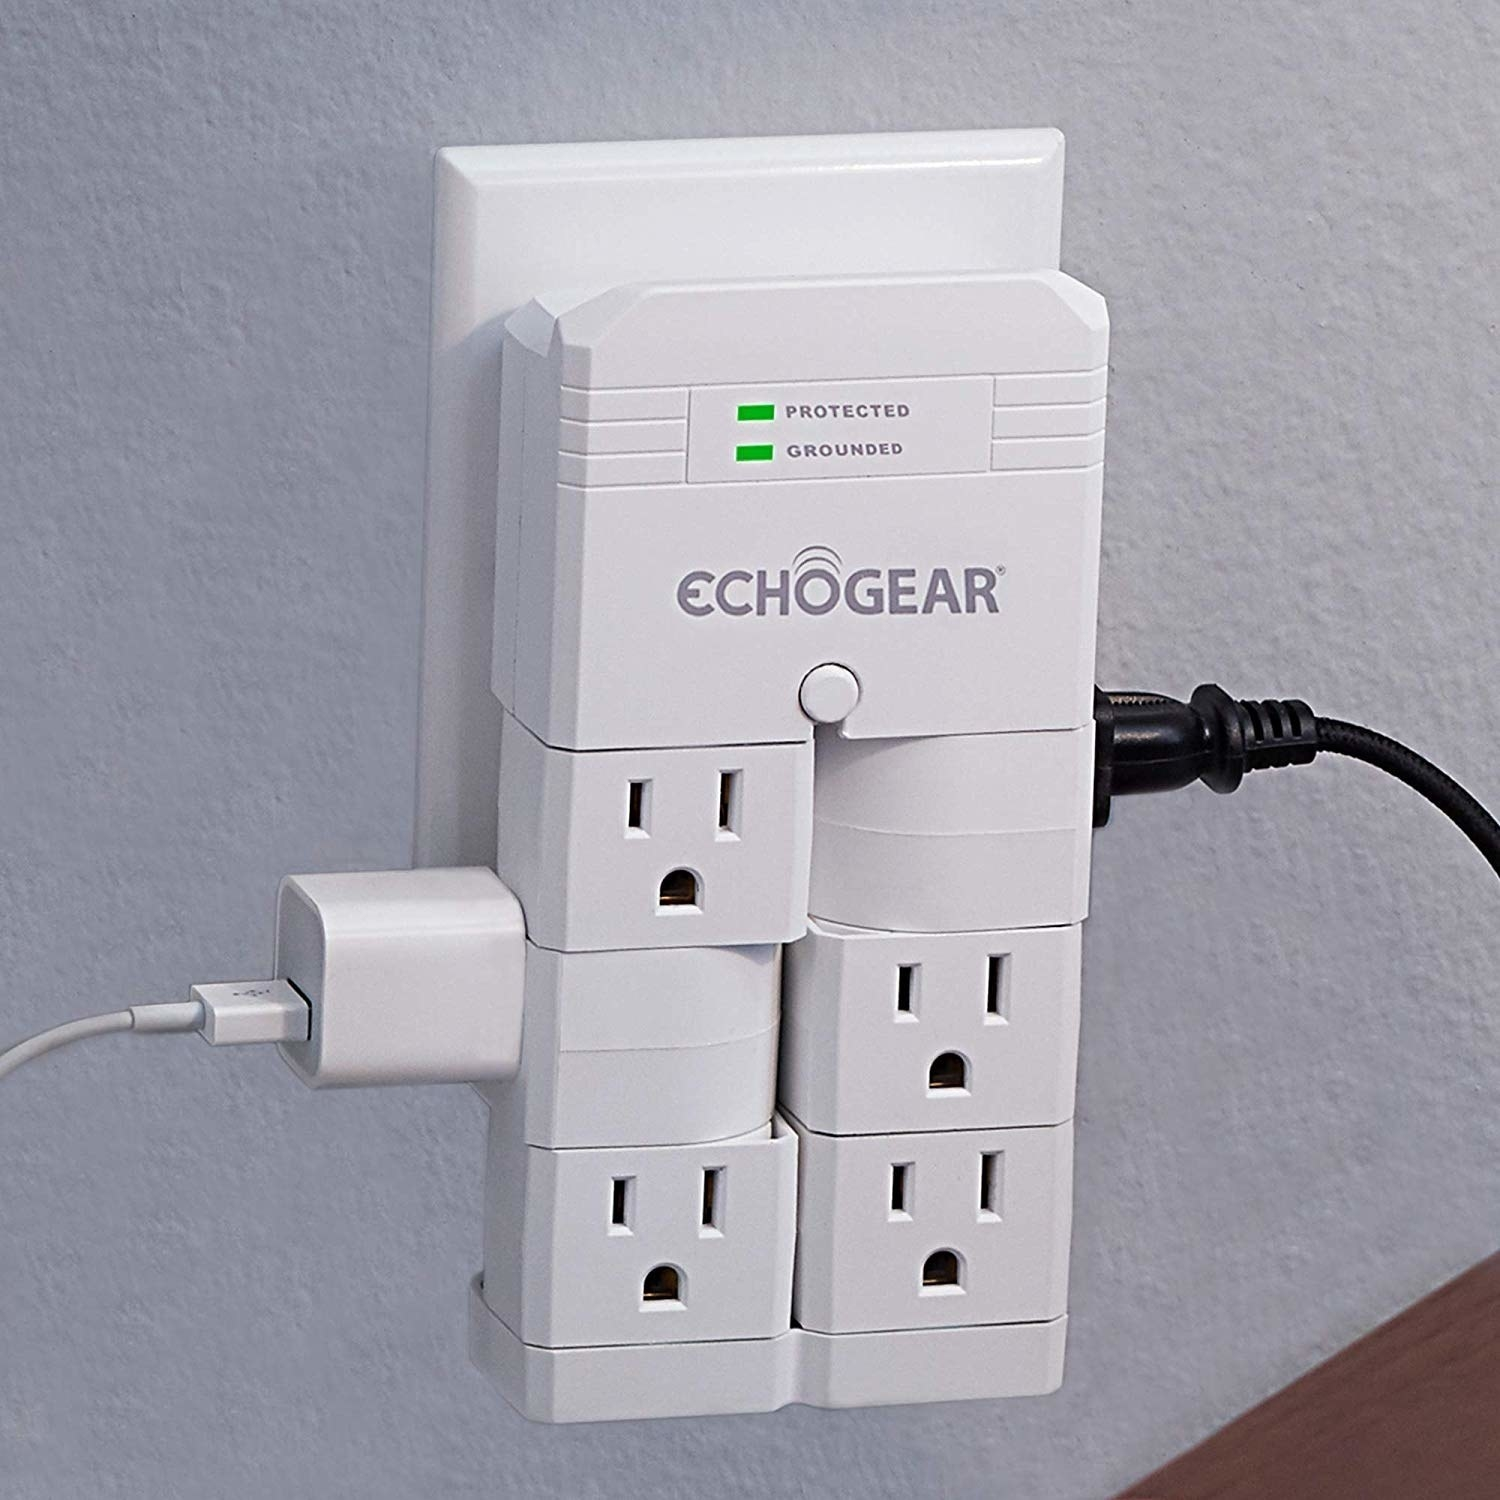 The surge protector